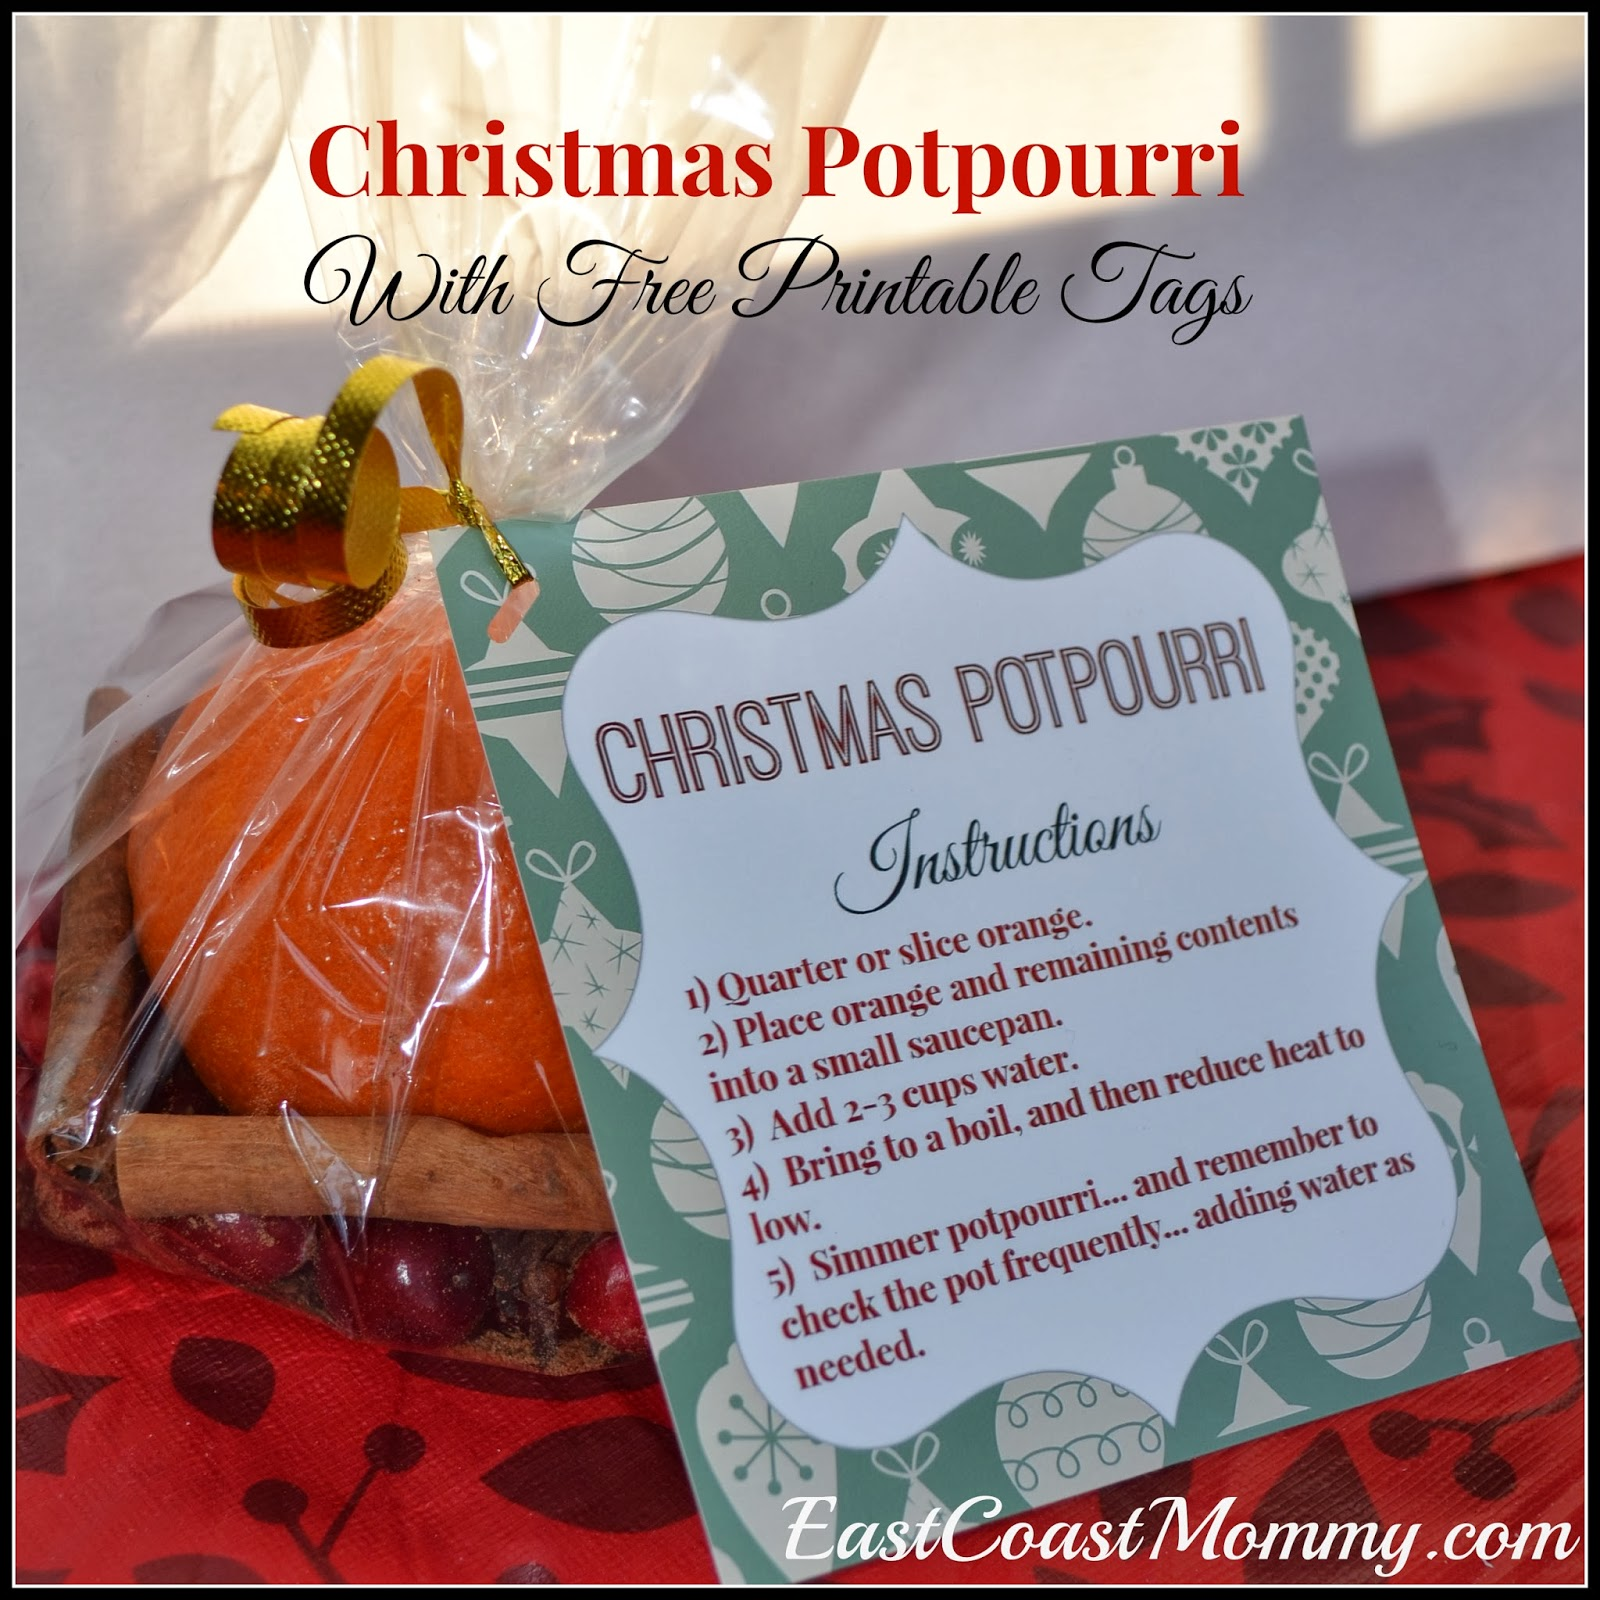 DIY Christmas Potpourri | East Coast Mommy